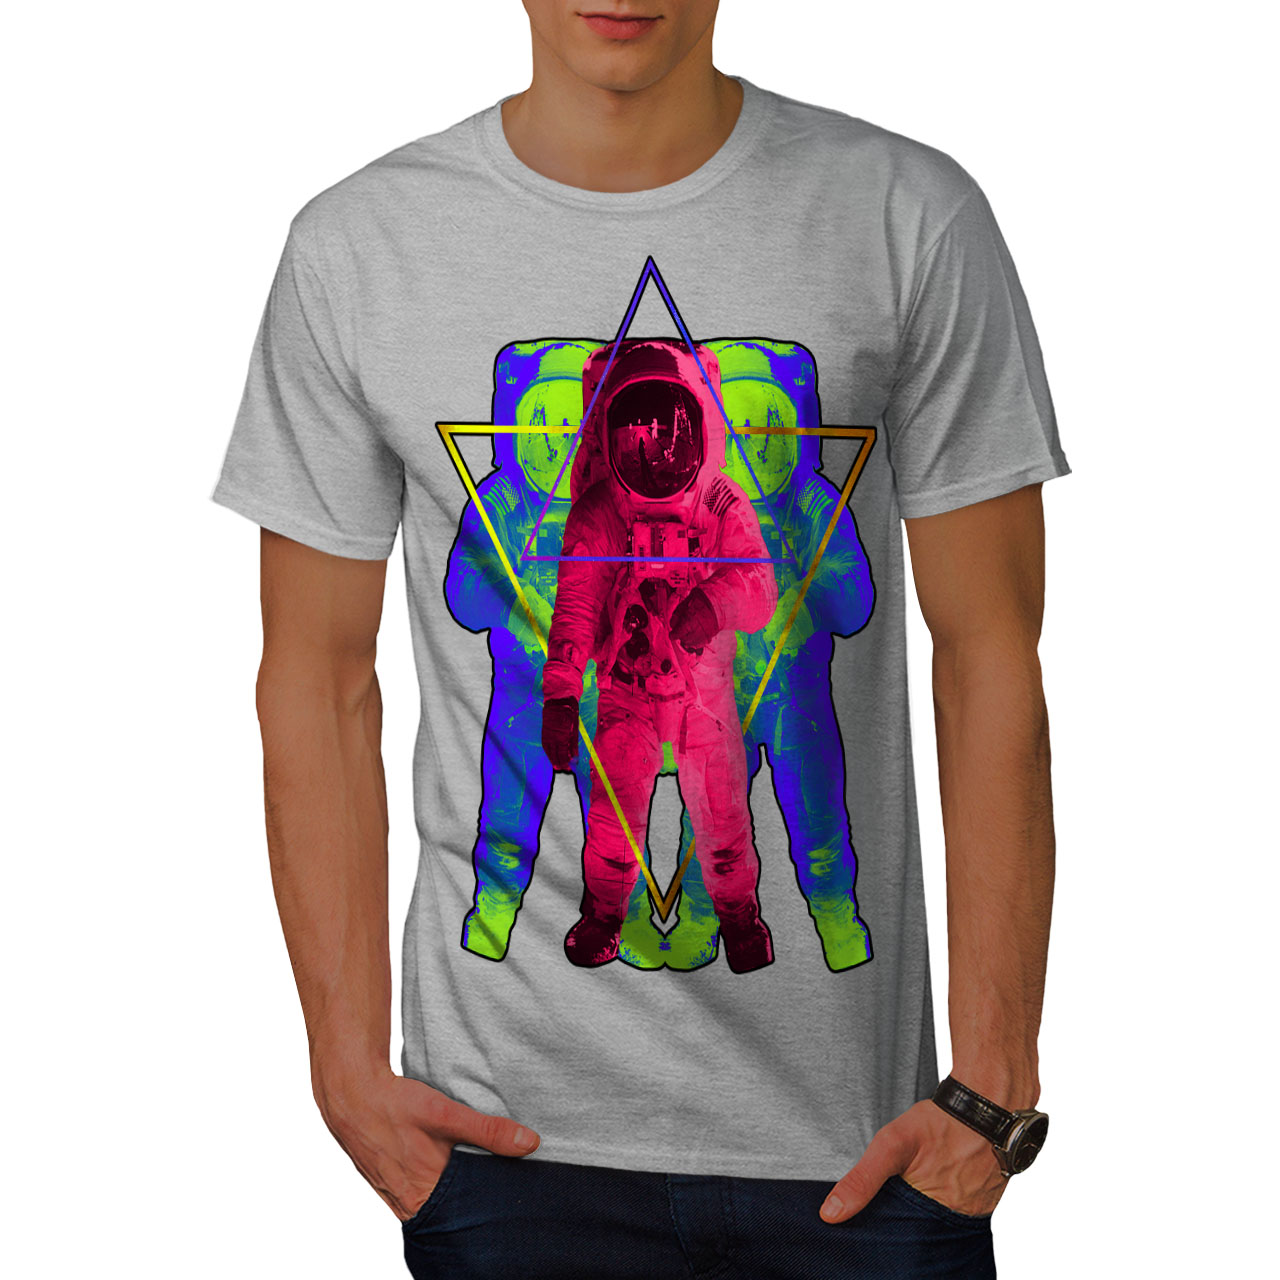 Wellcoda-Psychedelic-Astronaut-Mens-T-shirt-Star-Graphic-Design-Printed-Tee thumbnail 15